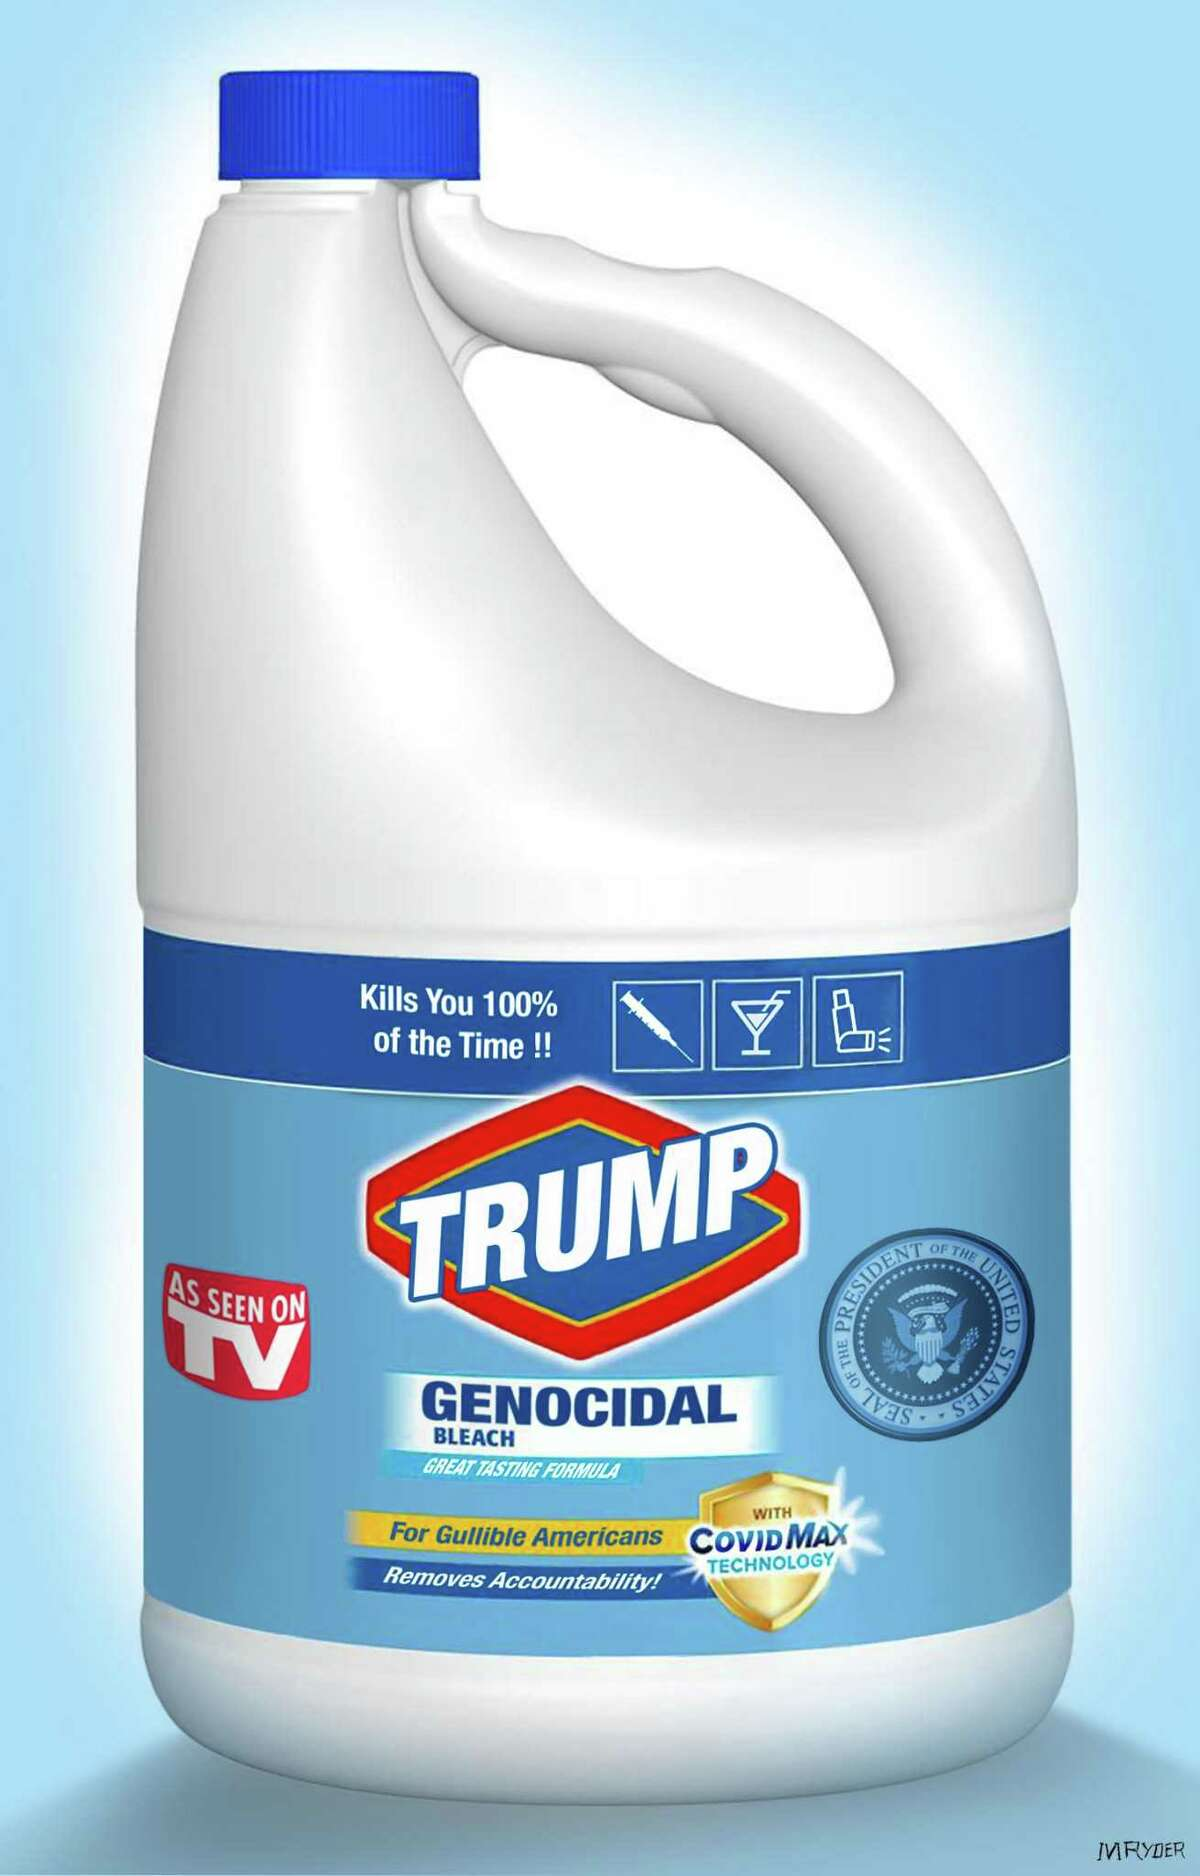 This artwork by M. Ryder refers to Donald Trump's claim that ingesting or injecting bleach could wipe out the coronavirus.